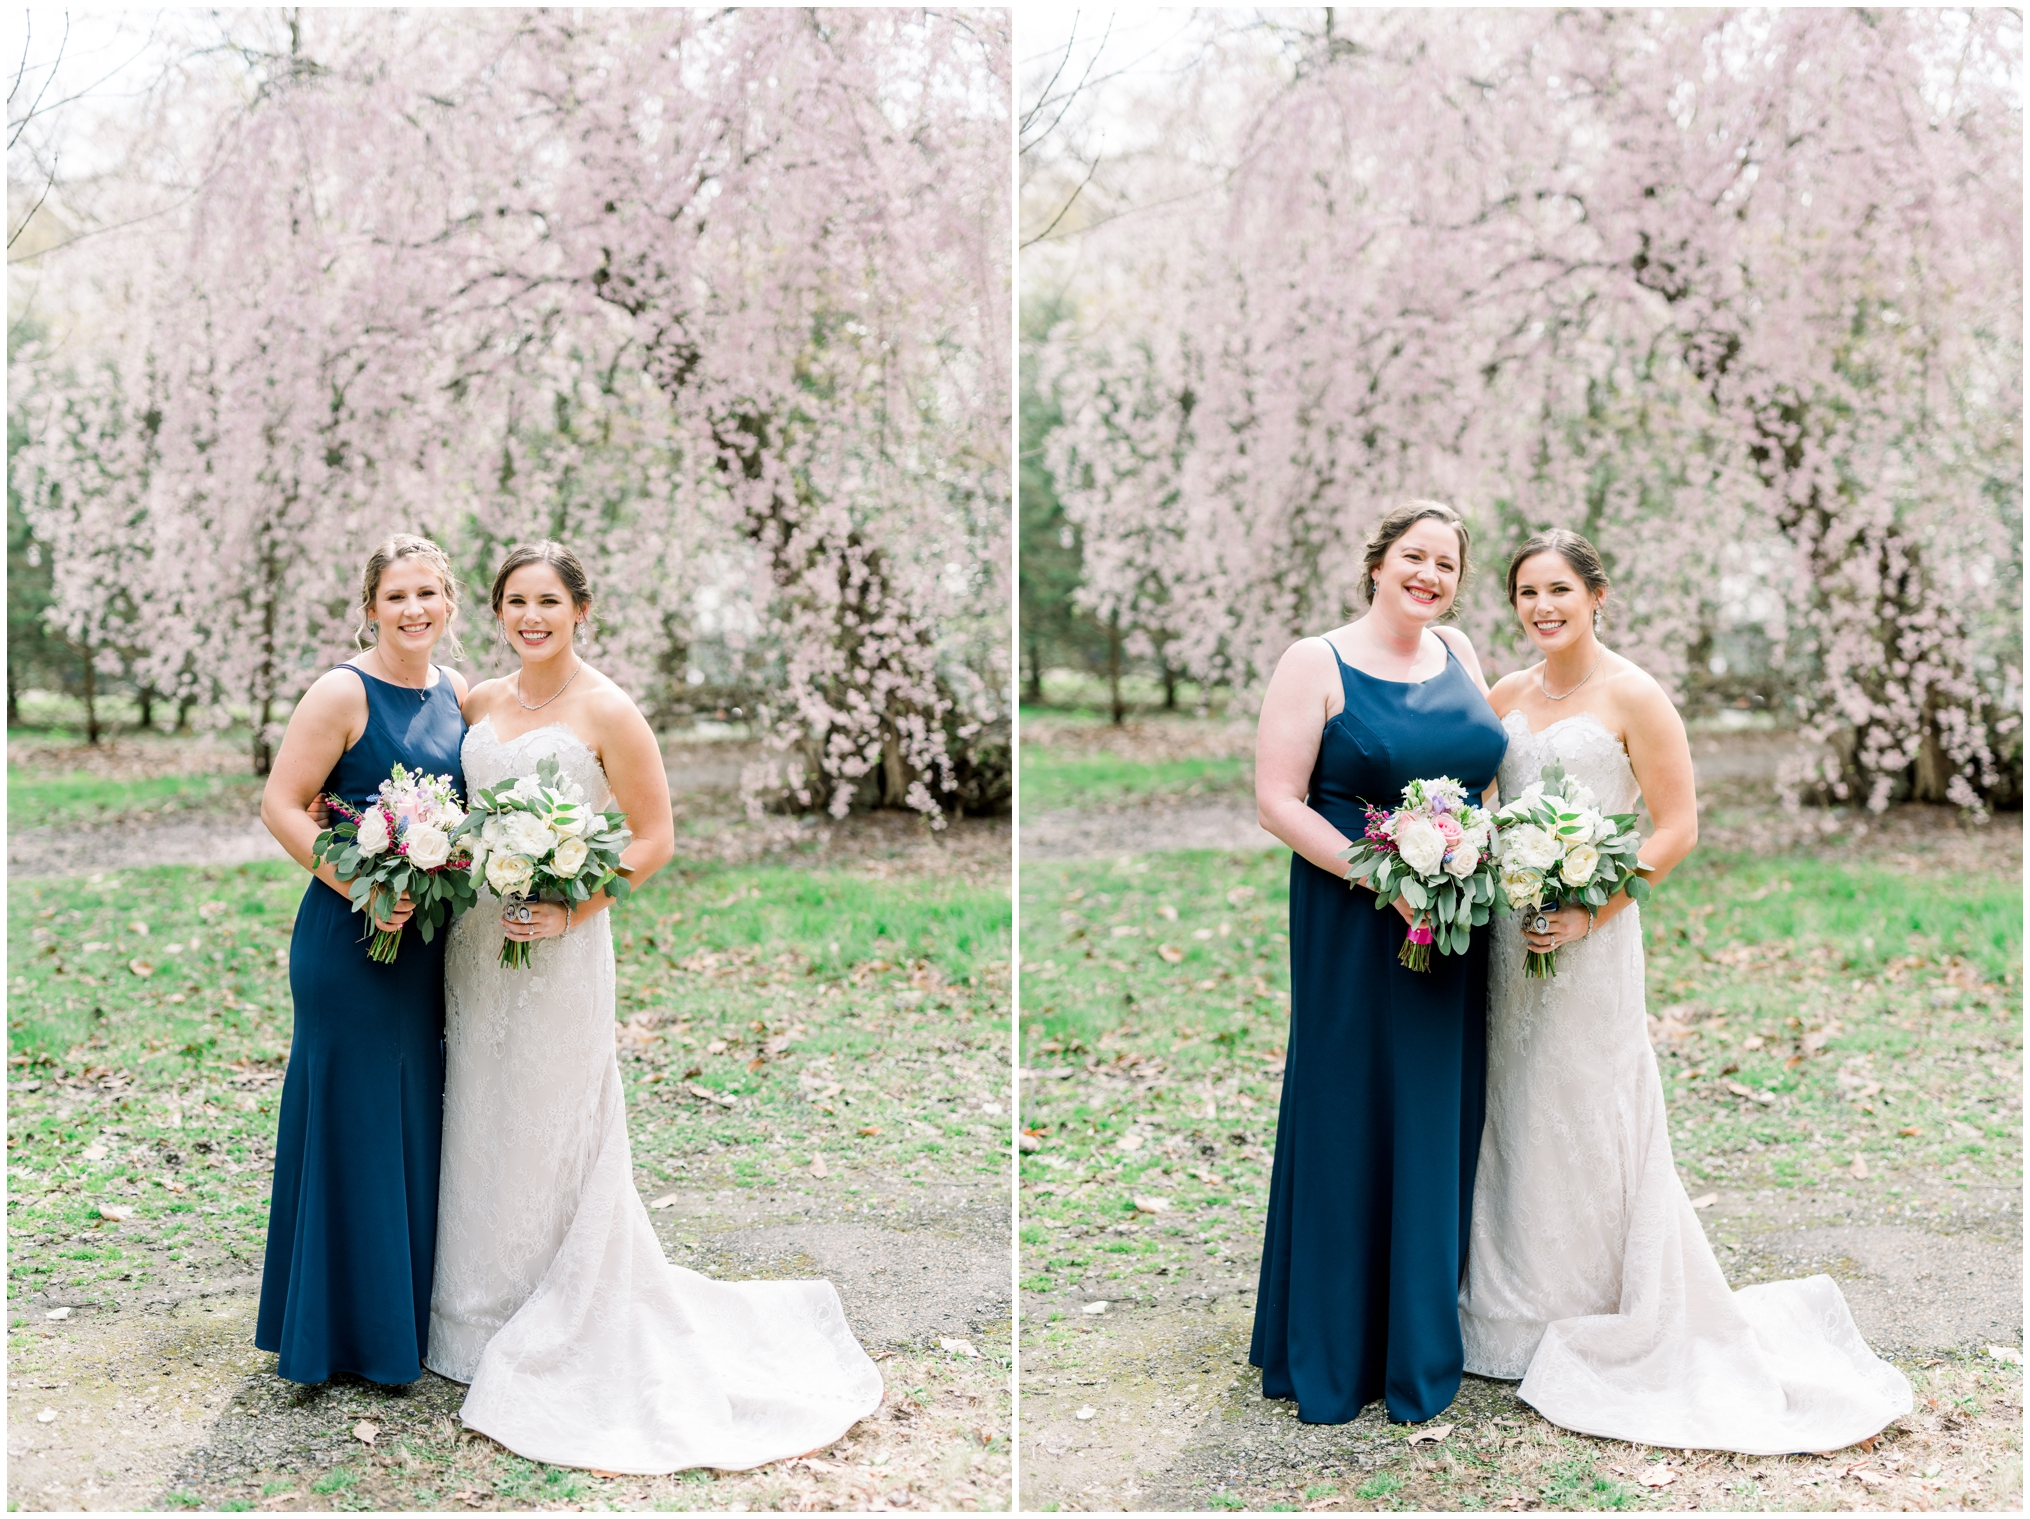 Krista Brackin Photography | April Wedding at The Carriage House at Rockwood Park_0057.jpg